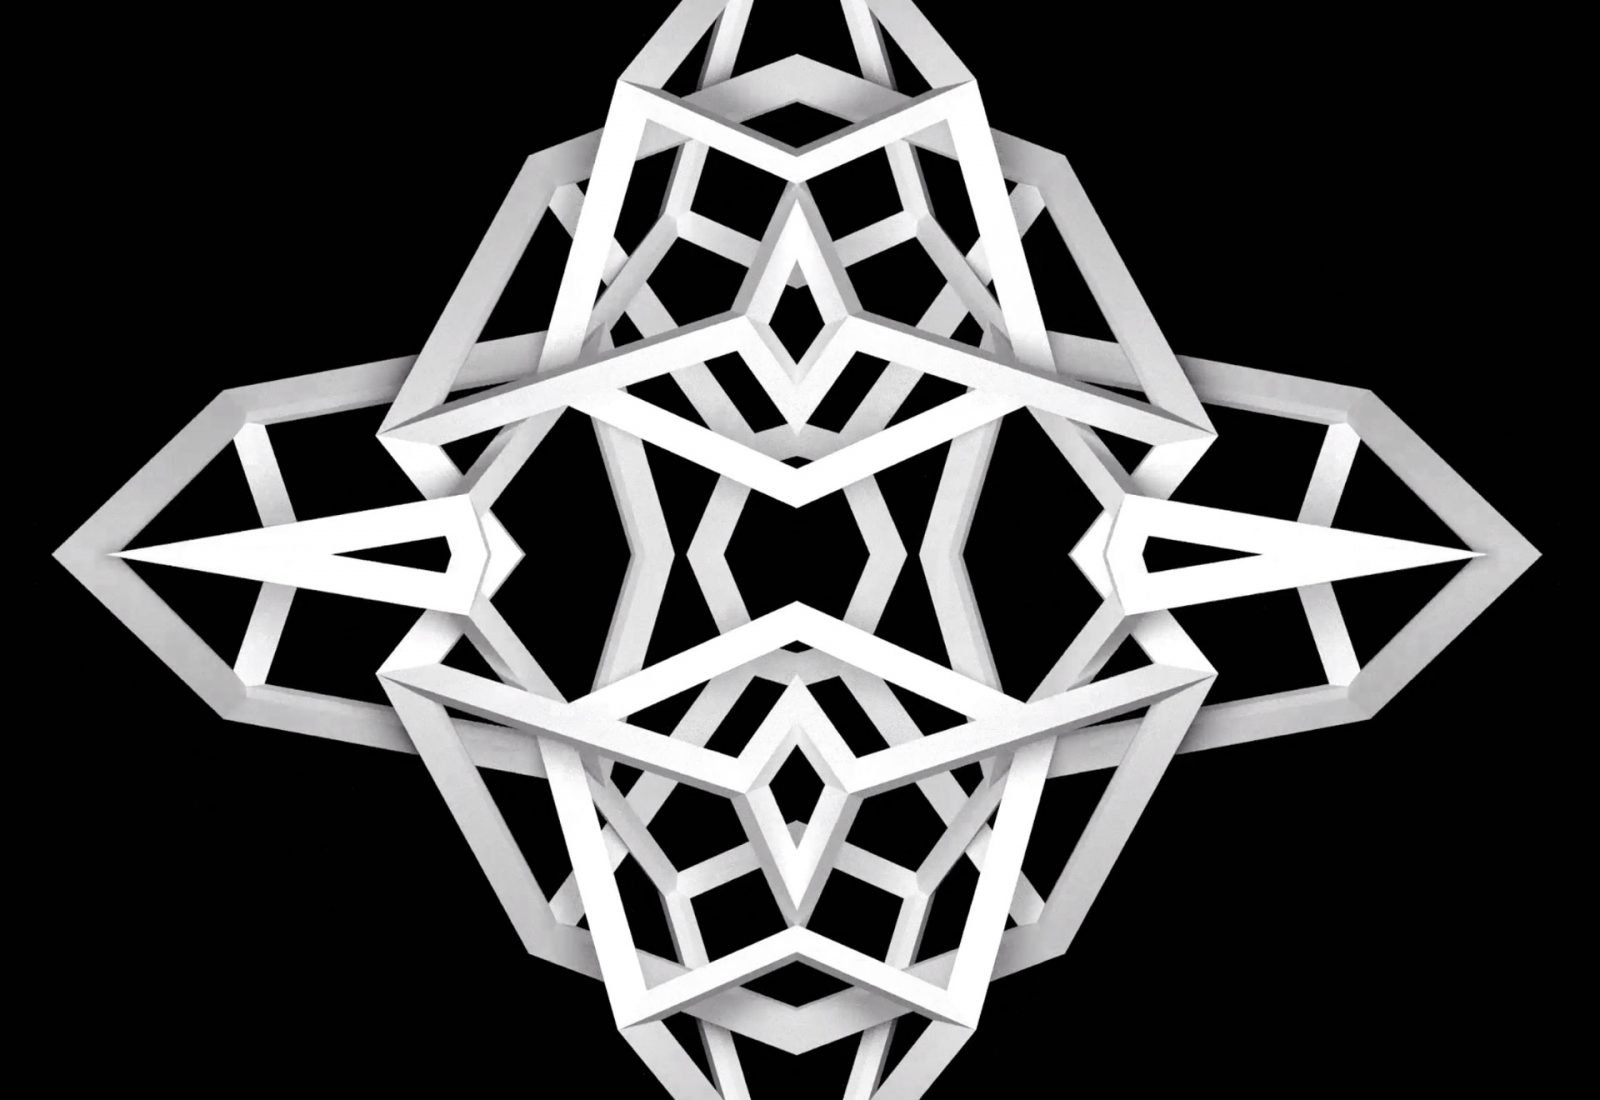 Cubframe kaleidoscope 3D animation experiment